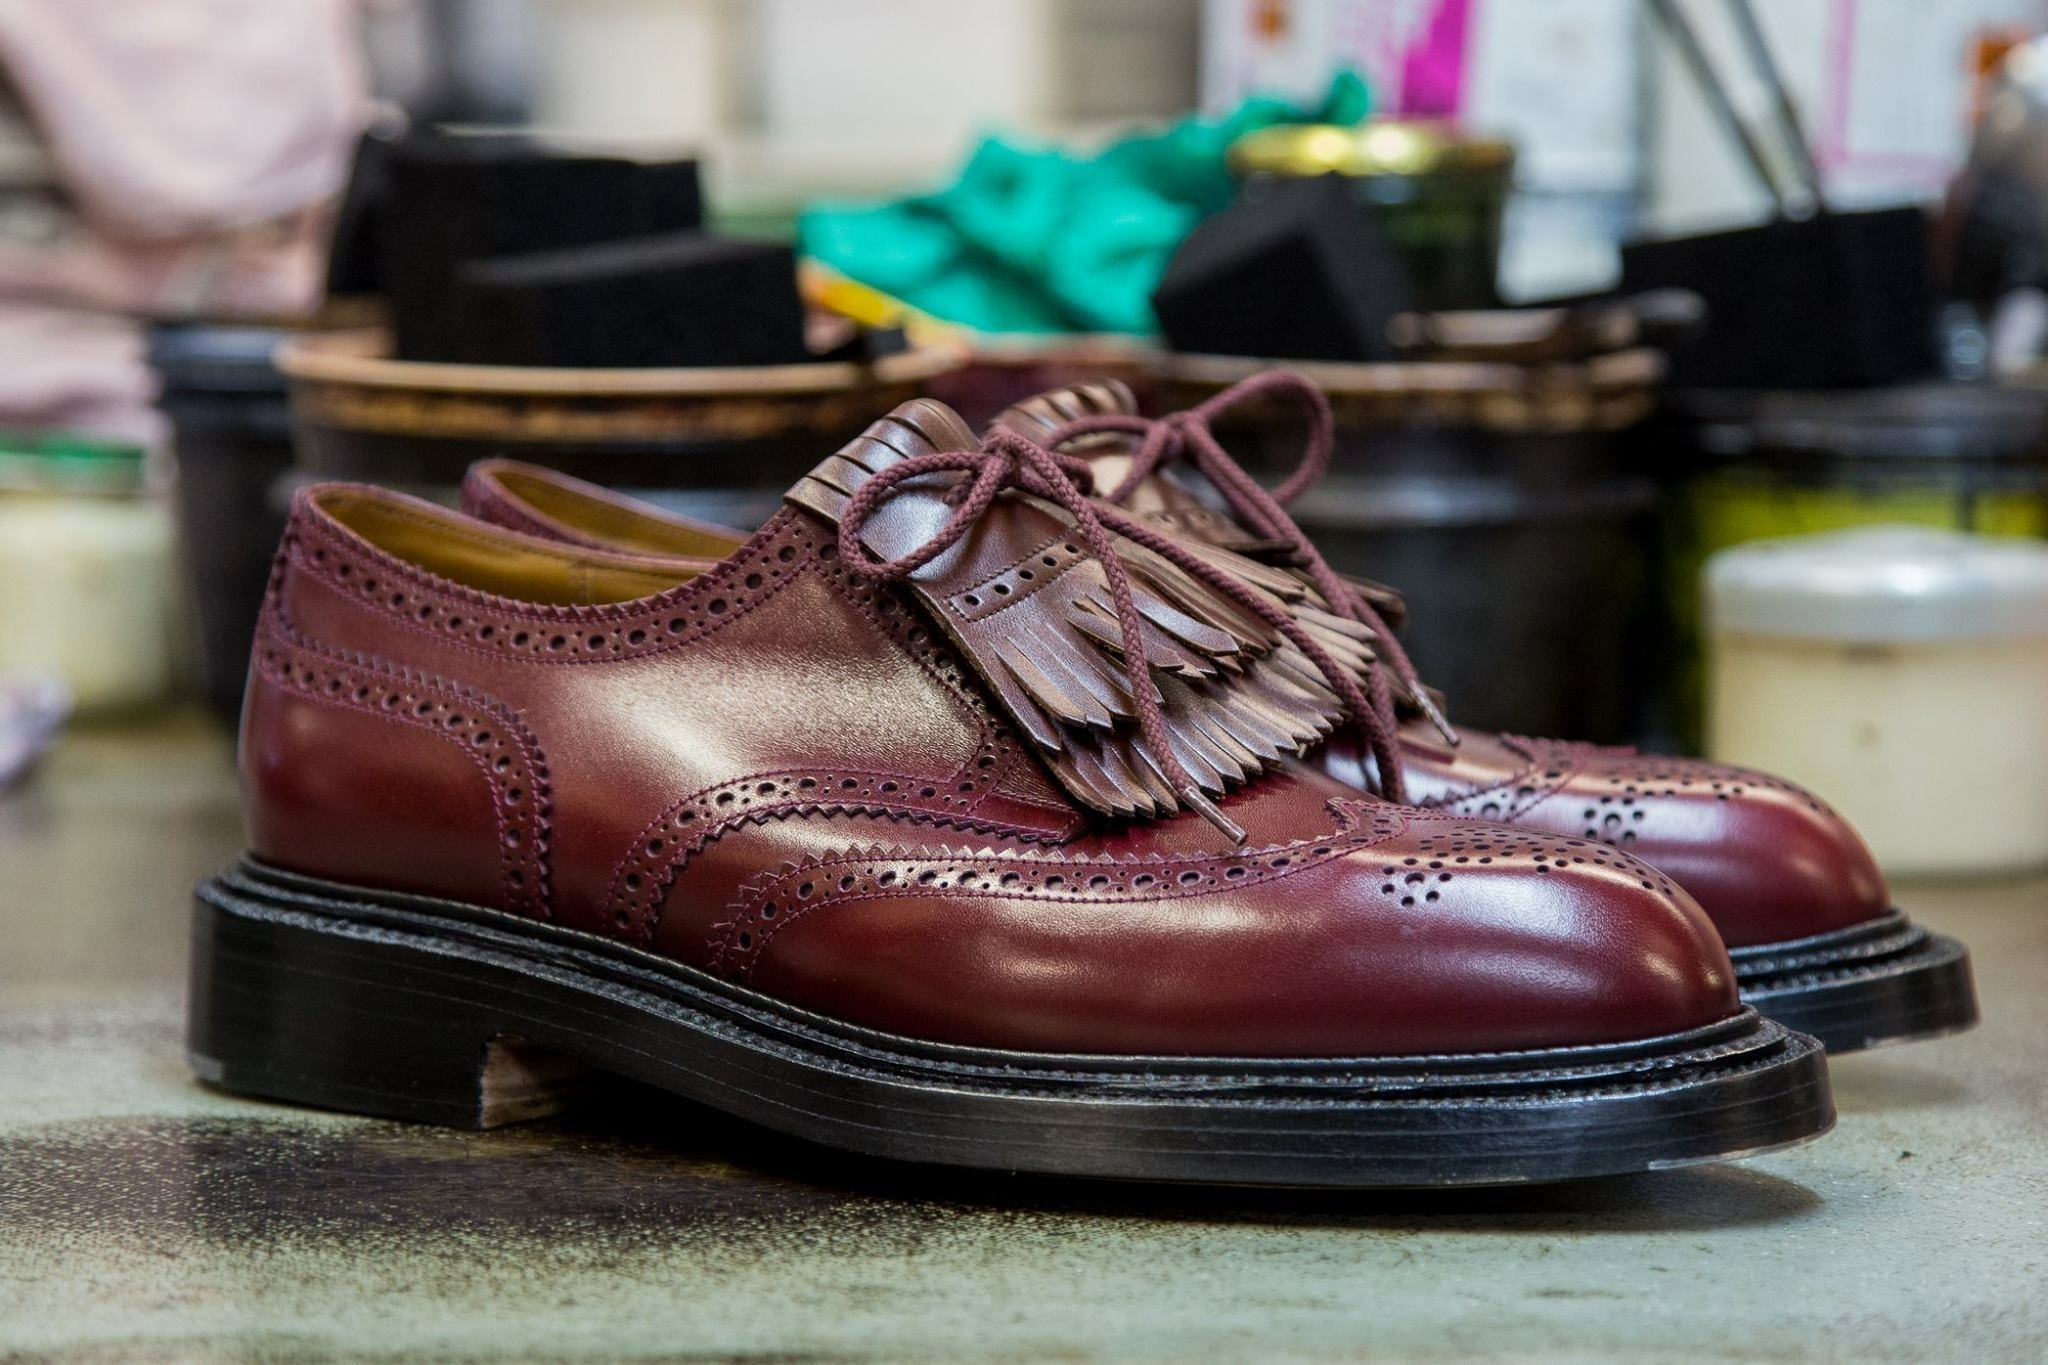 MEDALLION WING-TIP DERBY TRIPLE SOLE